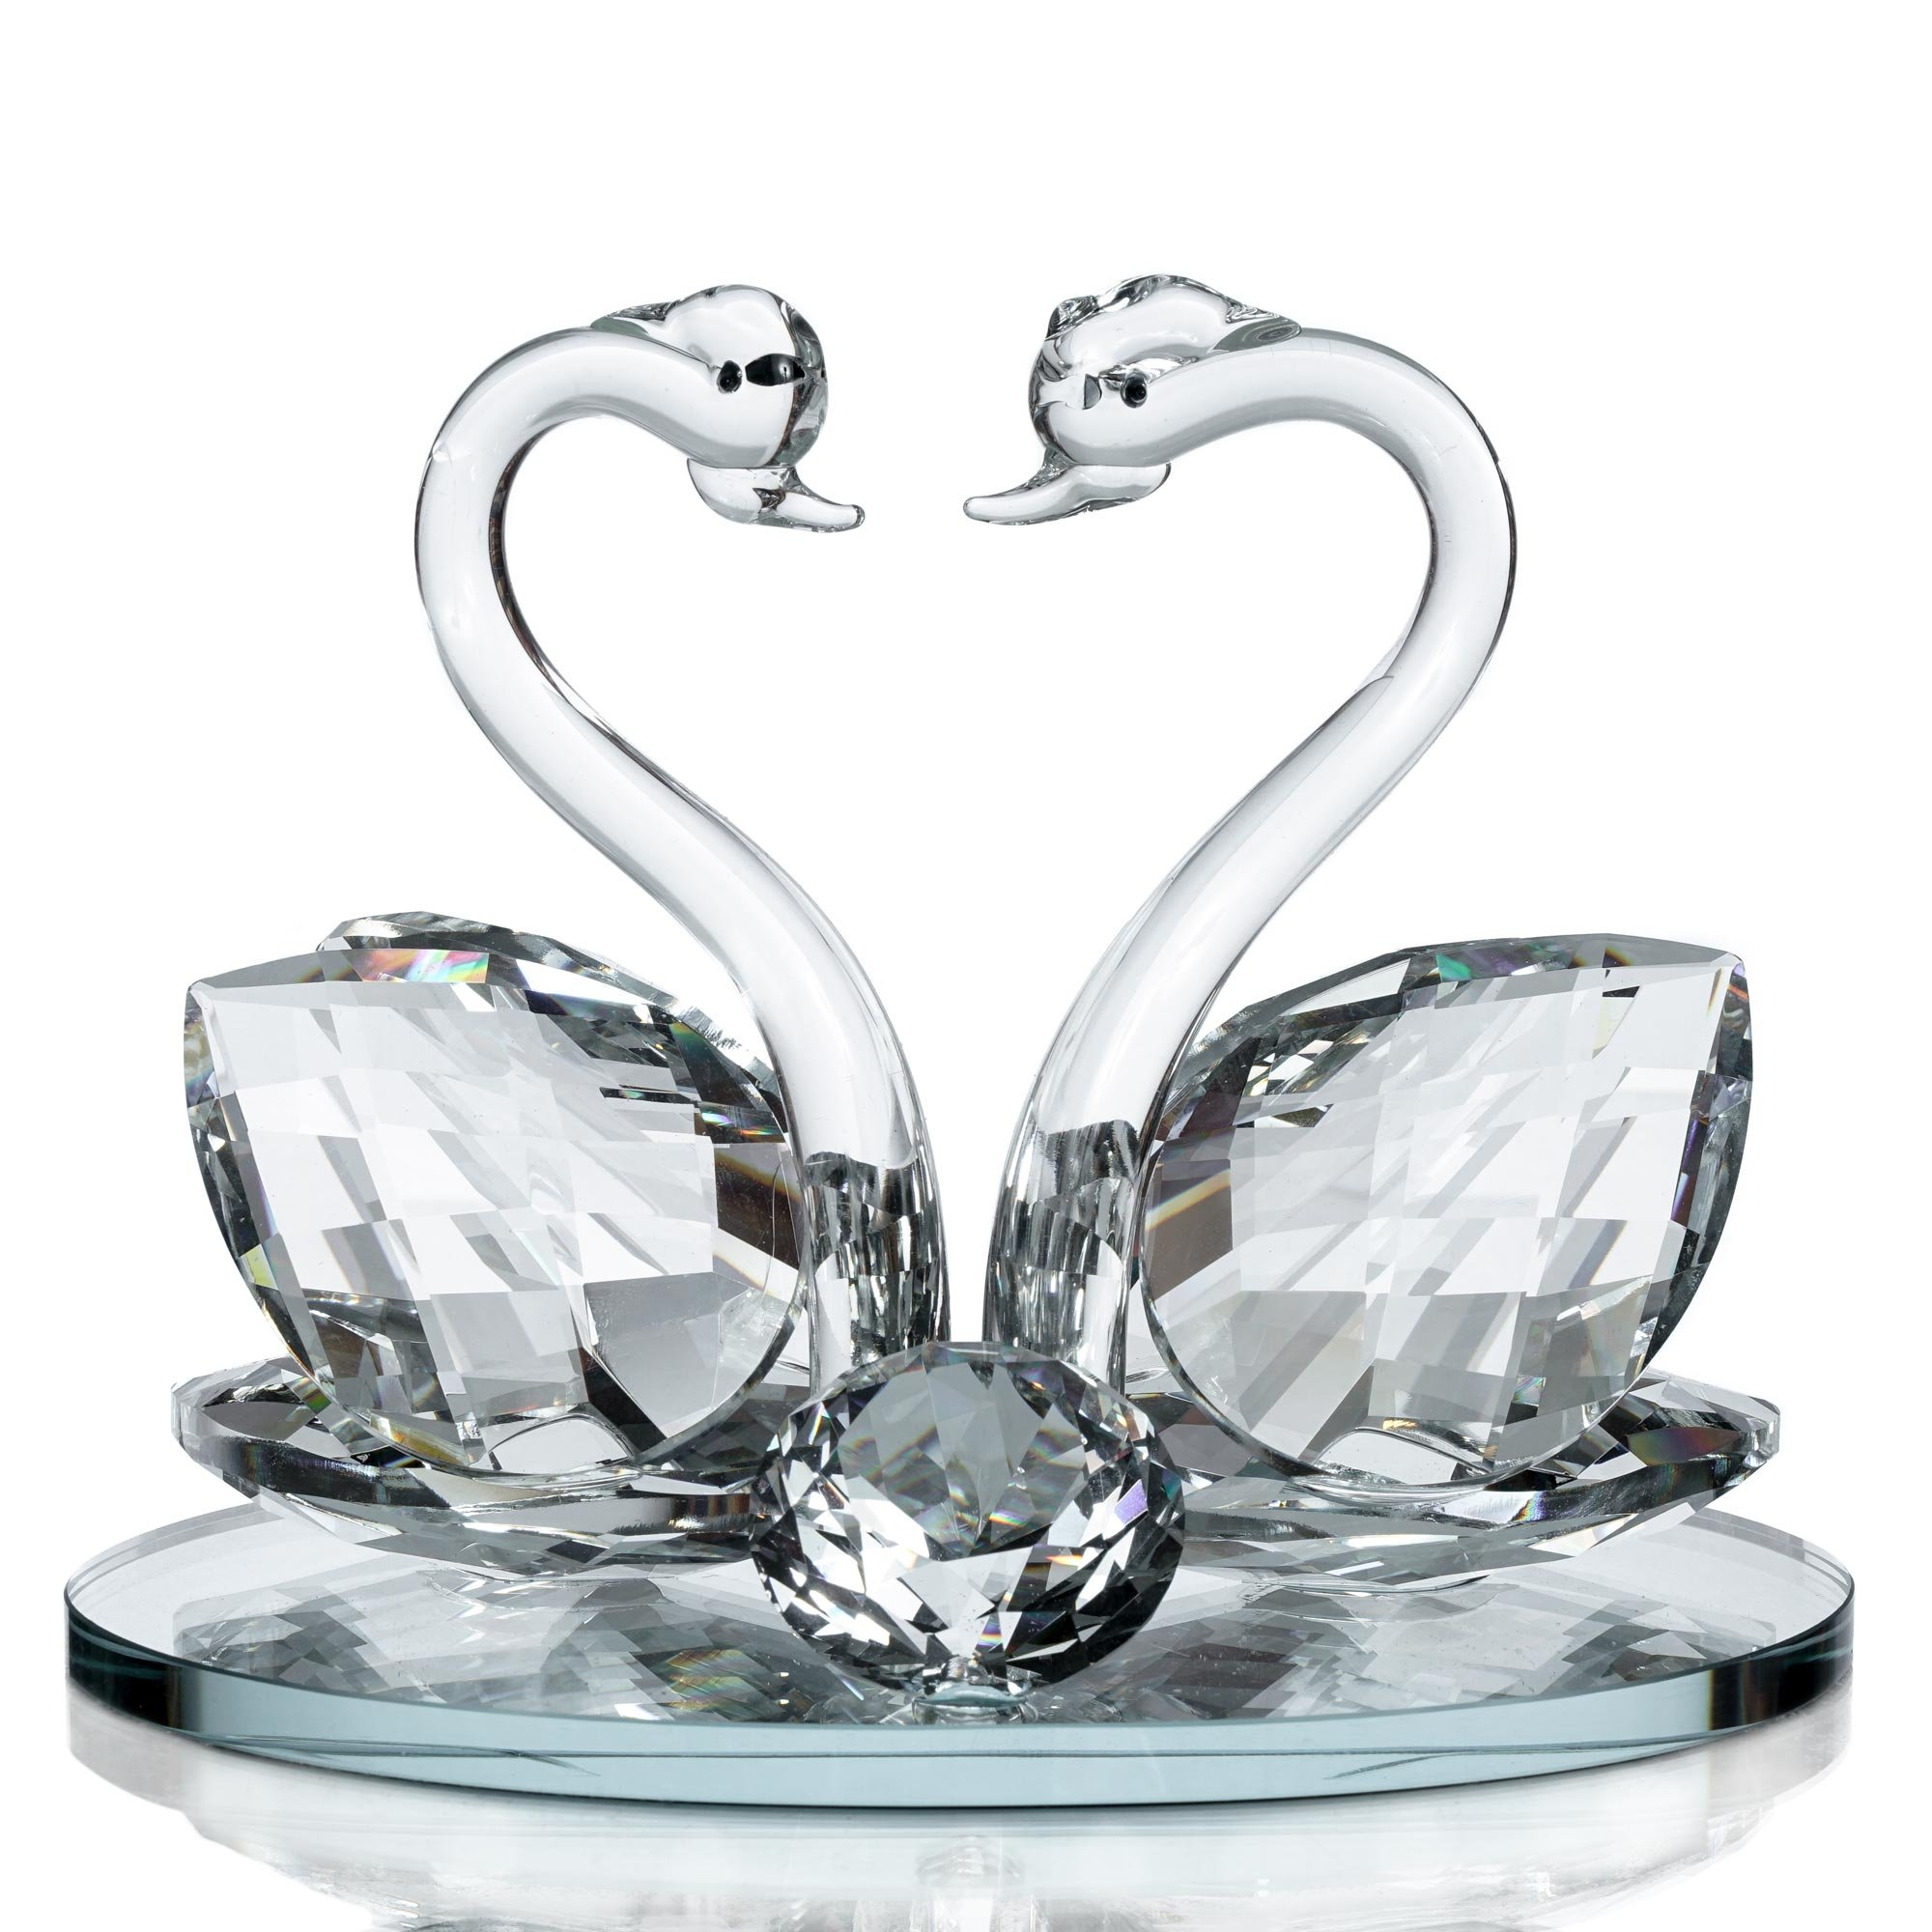 Decorative Crystal Glass Animal Double Swan Model with swarovski crystal elements Giftware Present (set of 1)